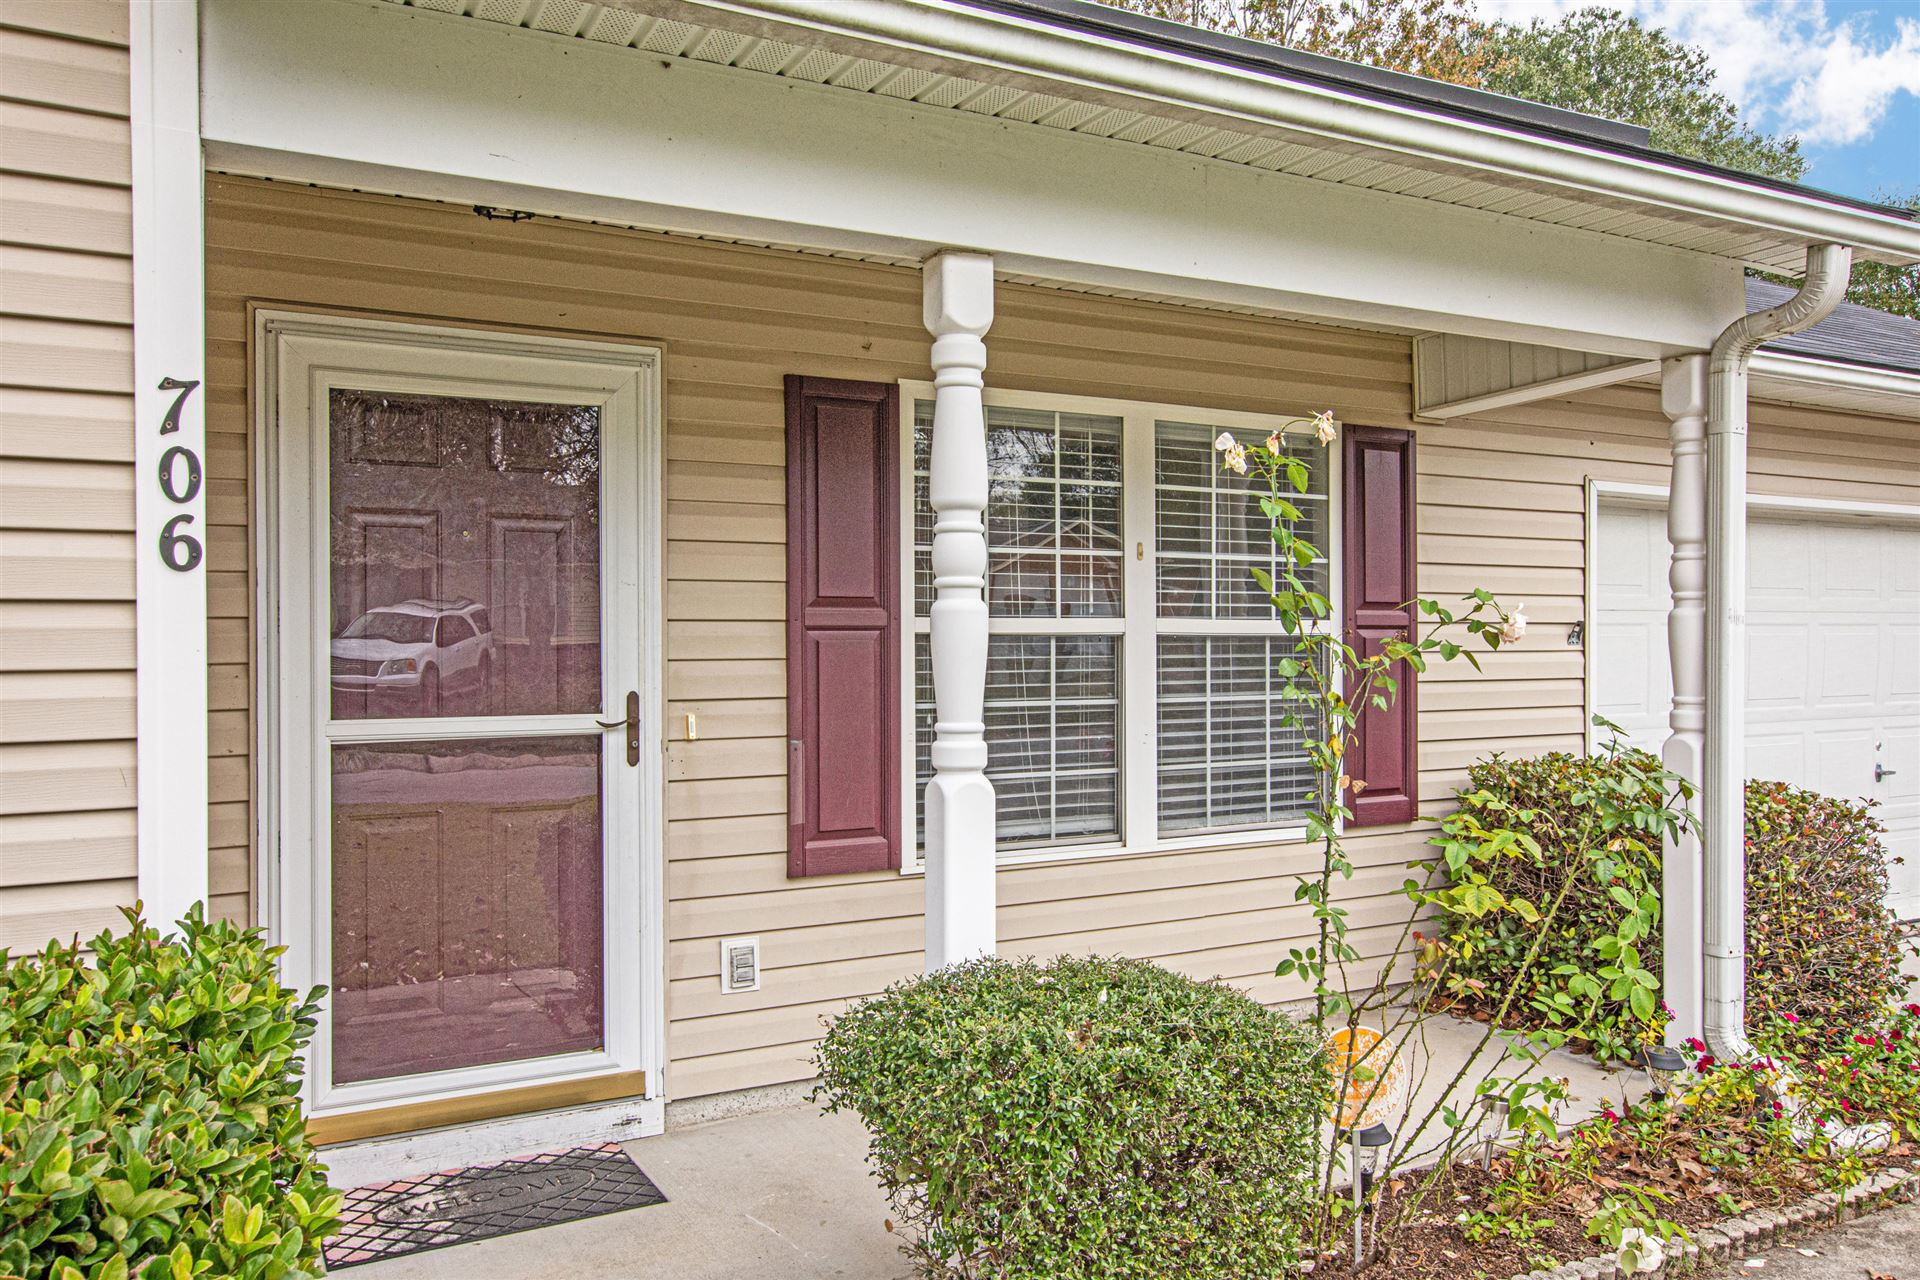 Photo of 706 Oxford Road, Ladson, SC 29456 (MLS # 20032116)